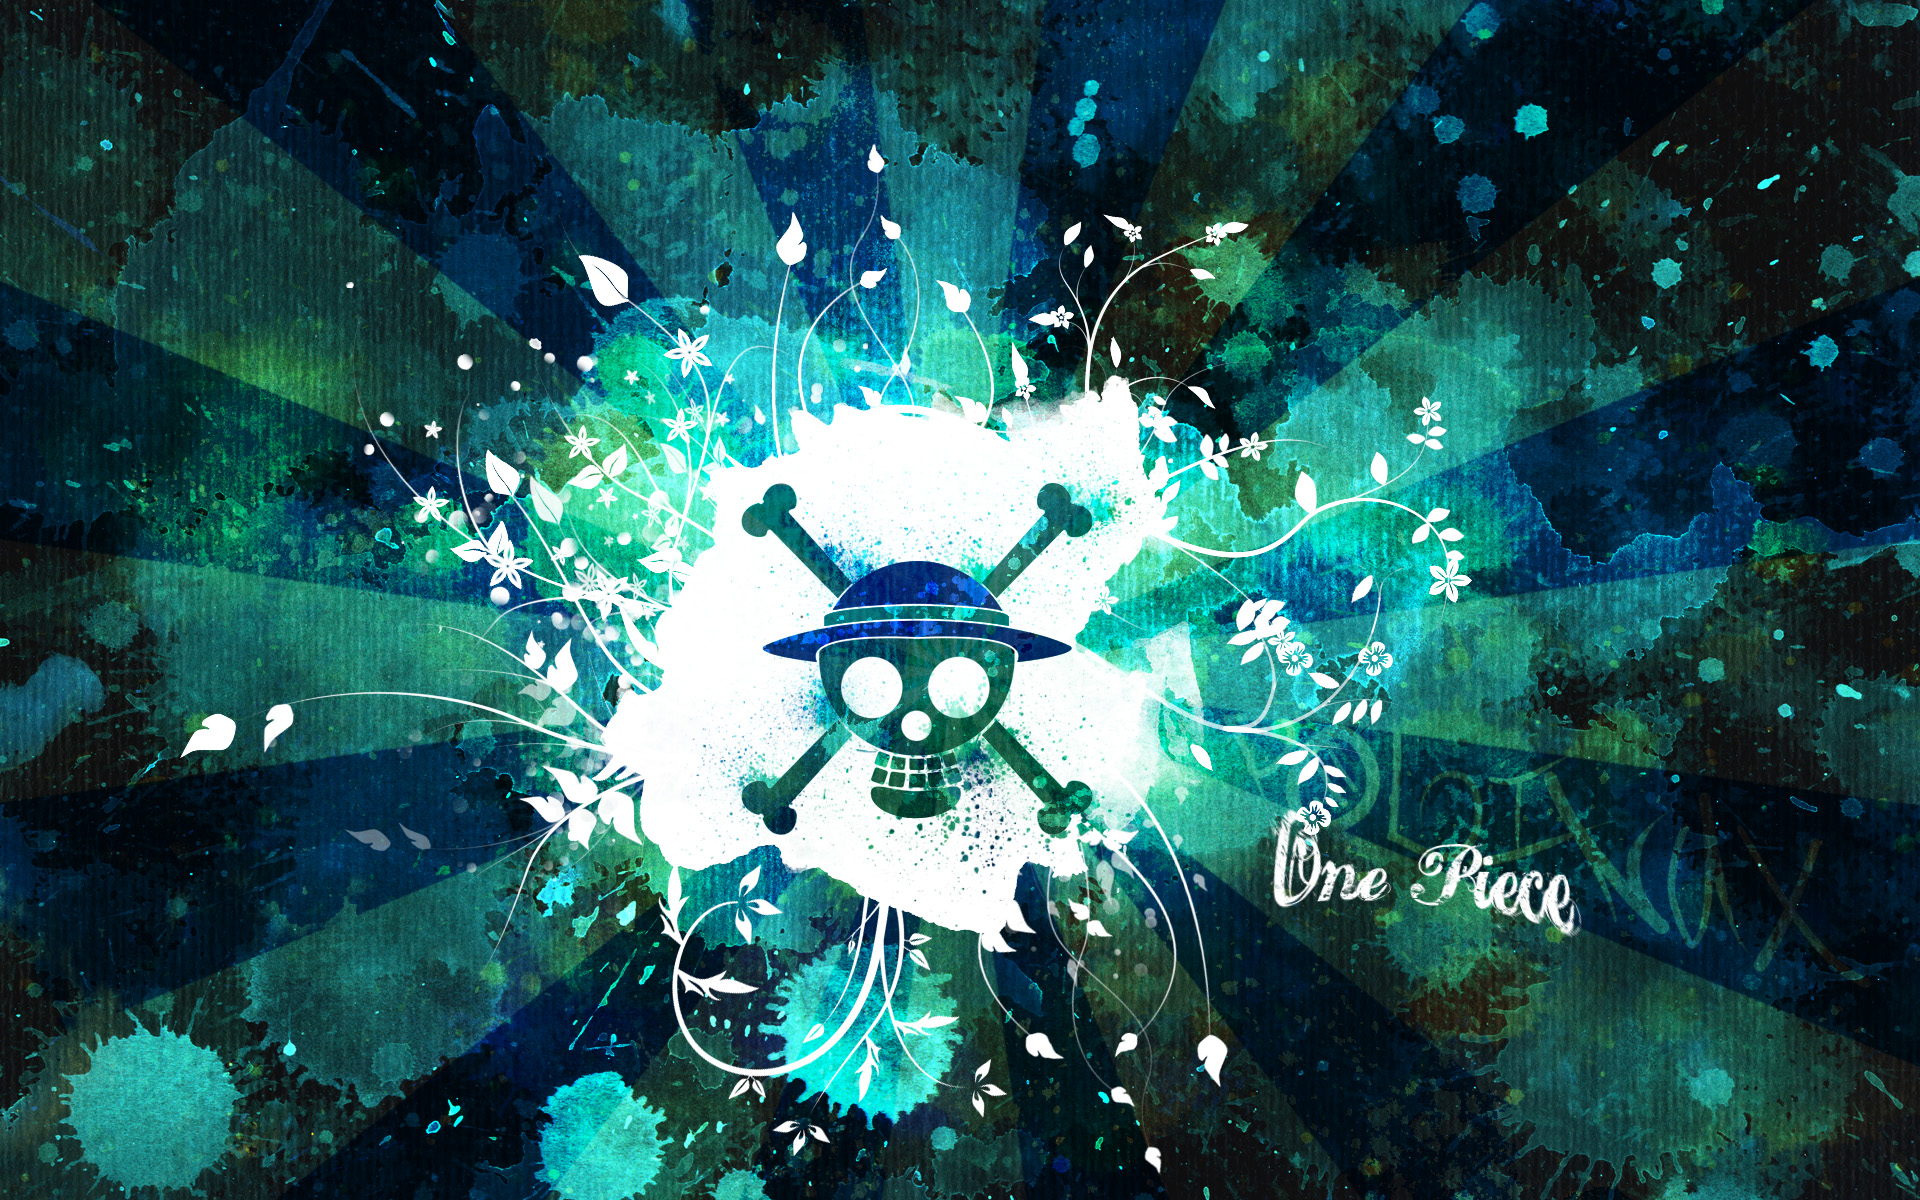 One Piece Wallpaper 6 Free Hd Wallpaper